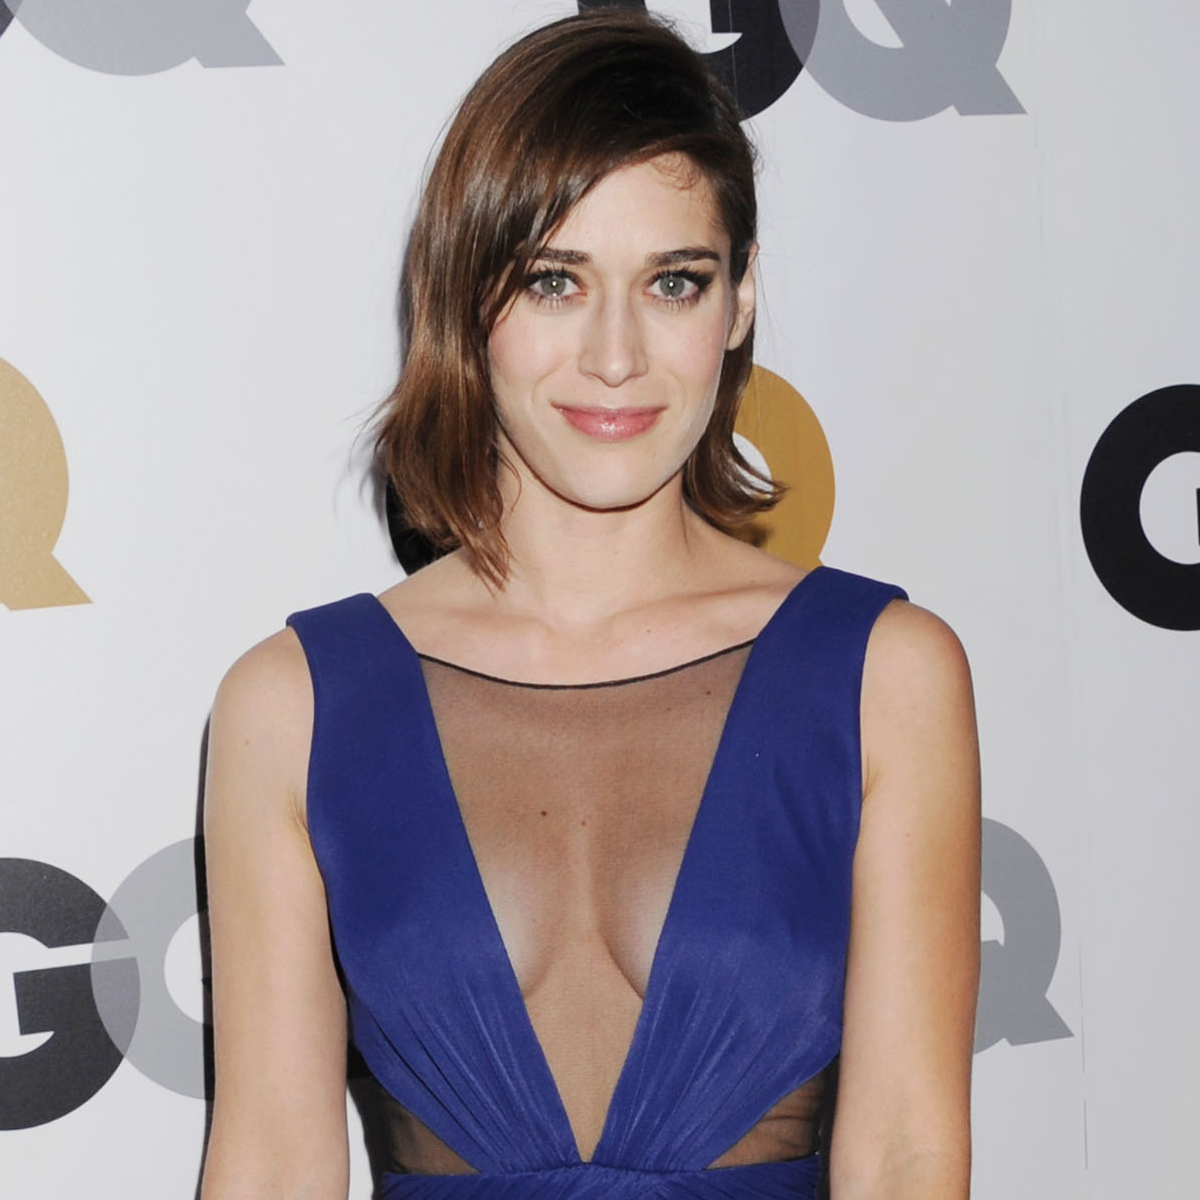 Lizzy Caplan earned a  million dollar salary, leaving the net worth at 4 million in 2017